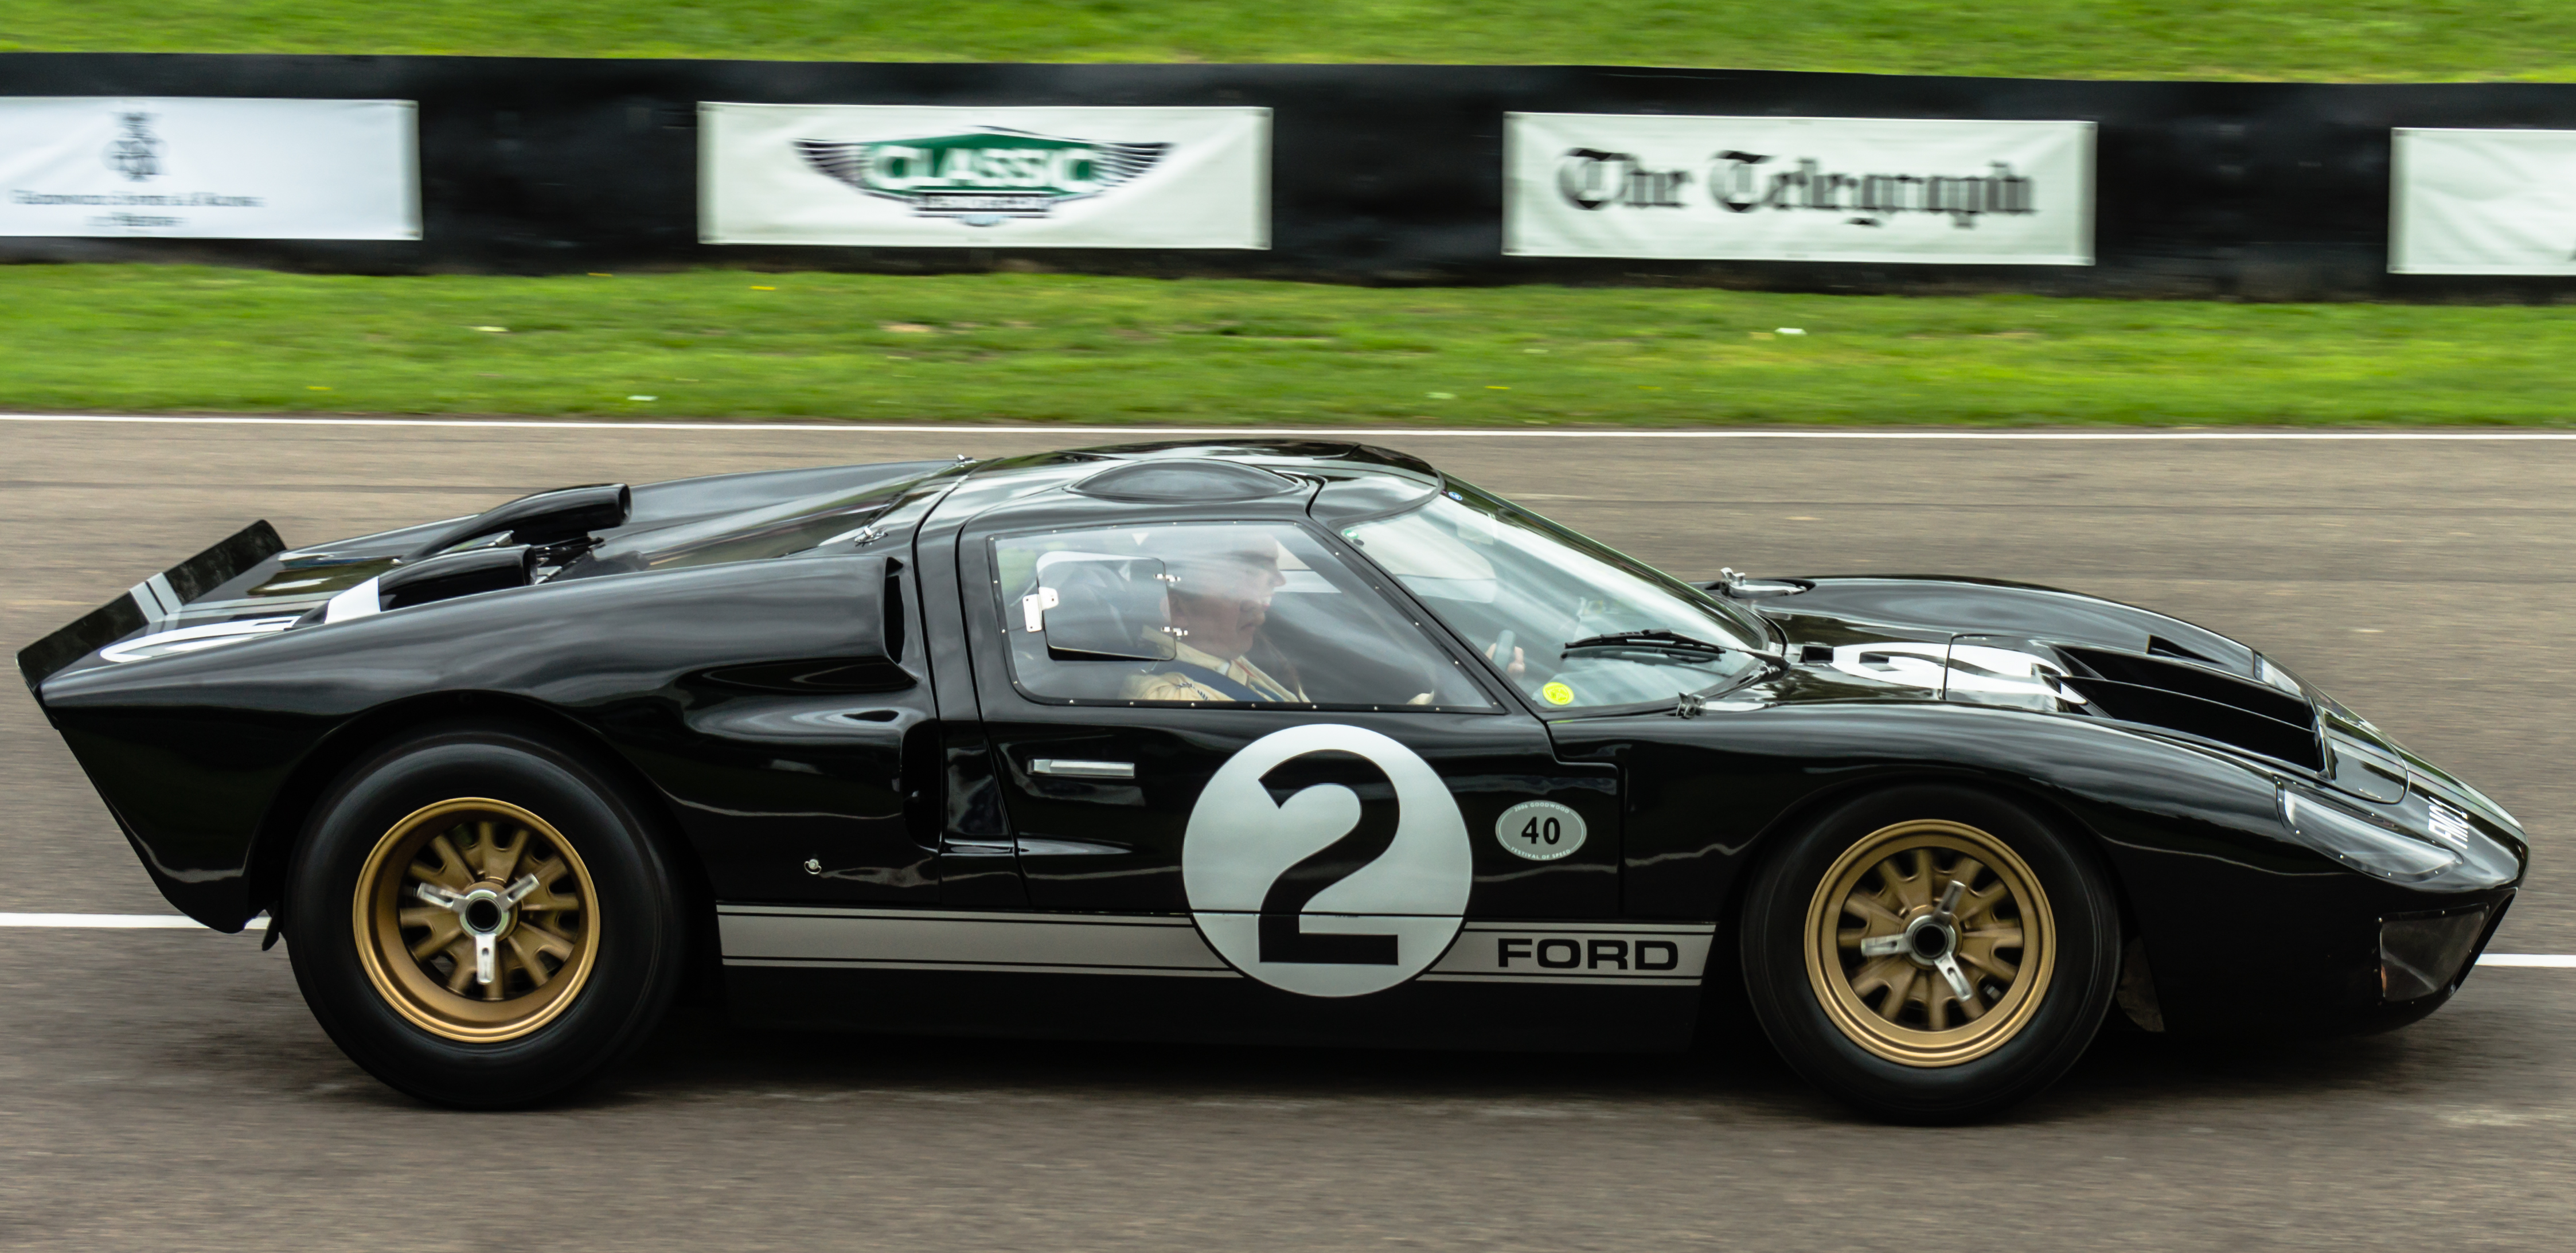 ford gt le mans 1967 with The Ford Gt40 on Watch moreover Chevrolet 1968 Camaro Z28 Rs also Sick Cars as well The Ford Gt40 furthermore 3030 6347.